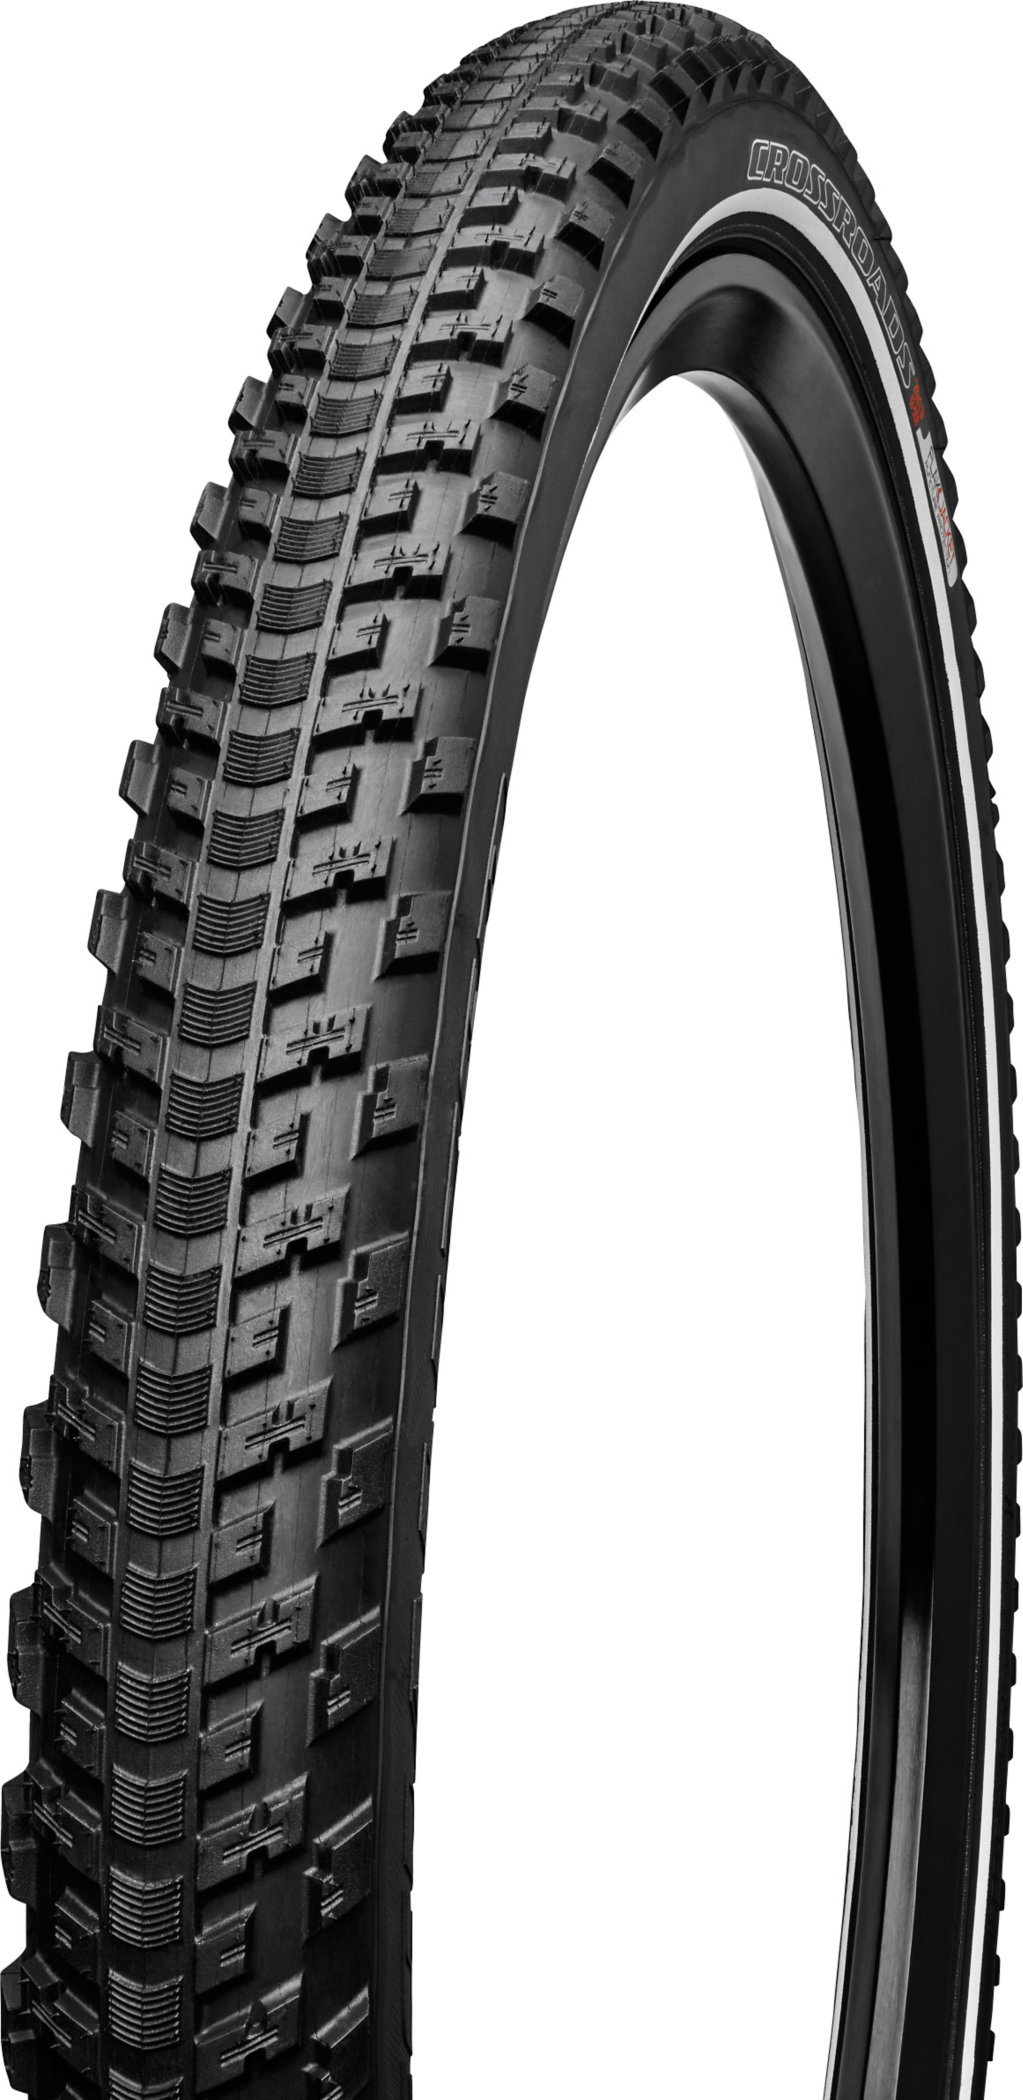 SPECIALIZED CROSSROADS REFLECT TIRE 700X38 - SPECIALIZED CROSSROADS REFLECT TIRE 700X38